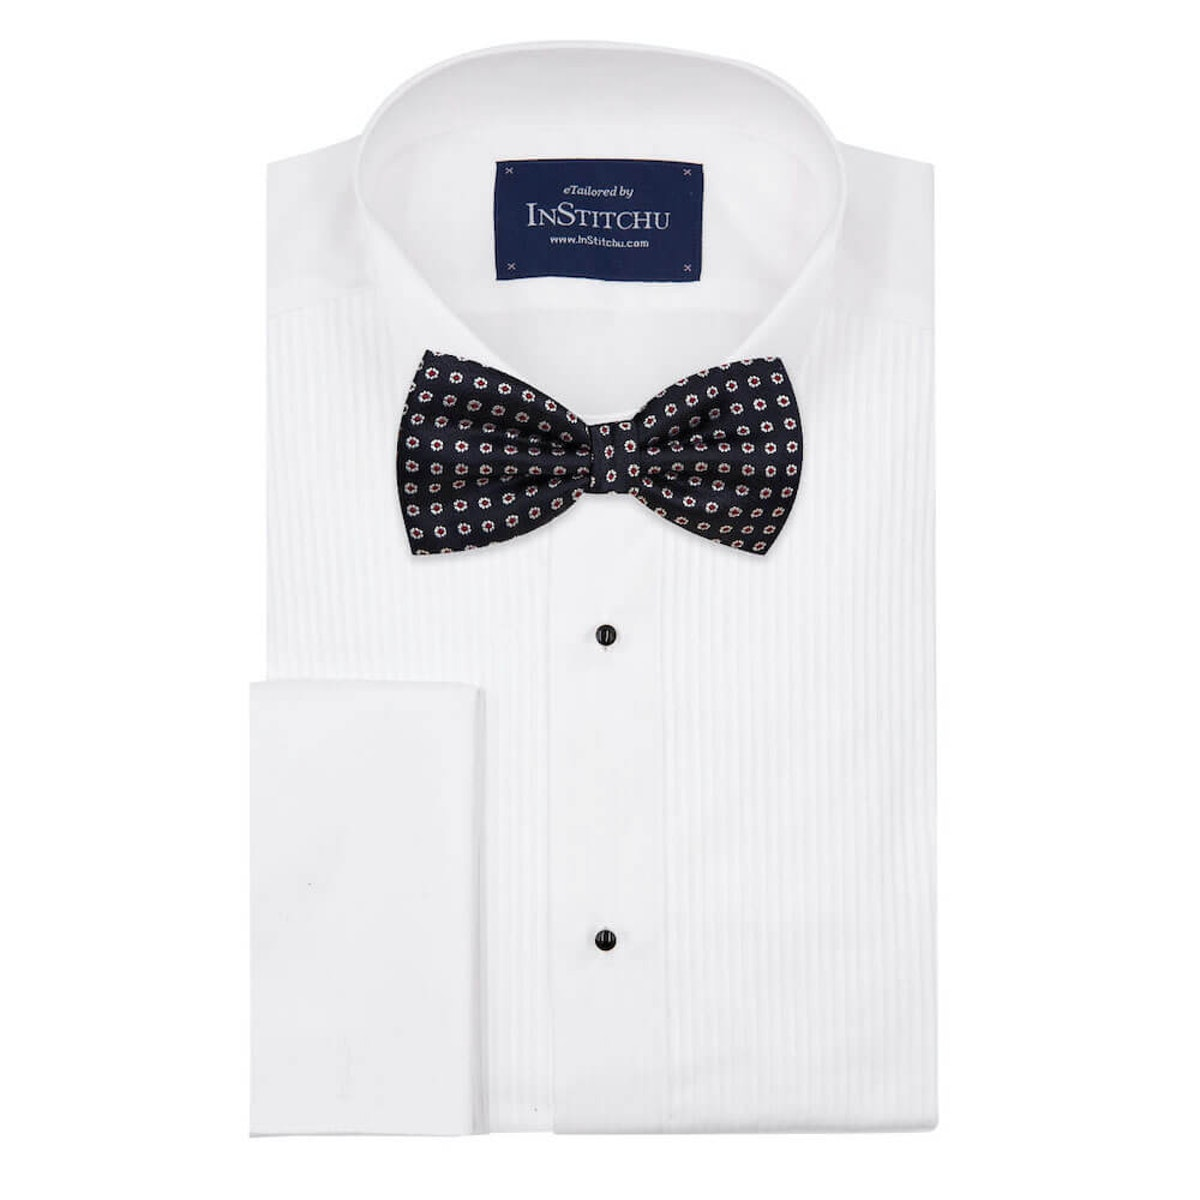 InStitchu Accessories bow-tie The Salinger Navy Premium Flower Bow Tie on shirt